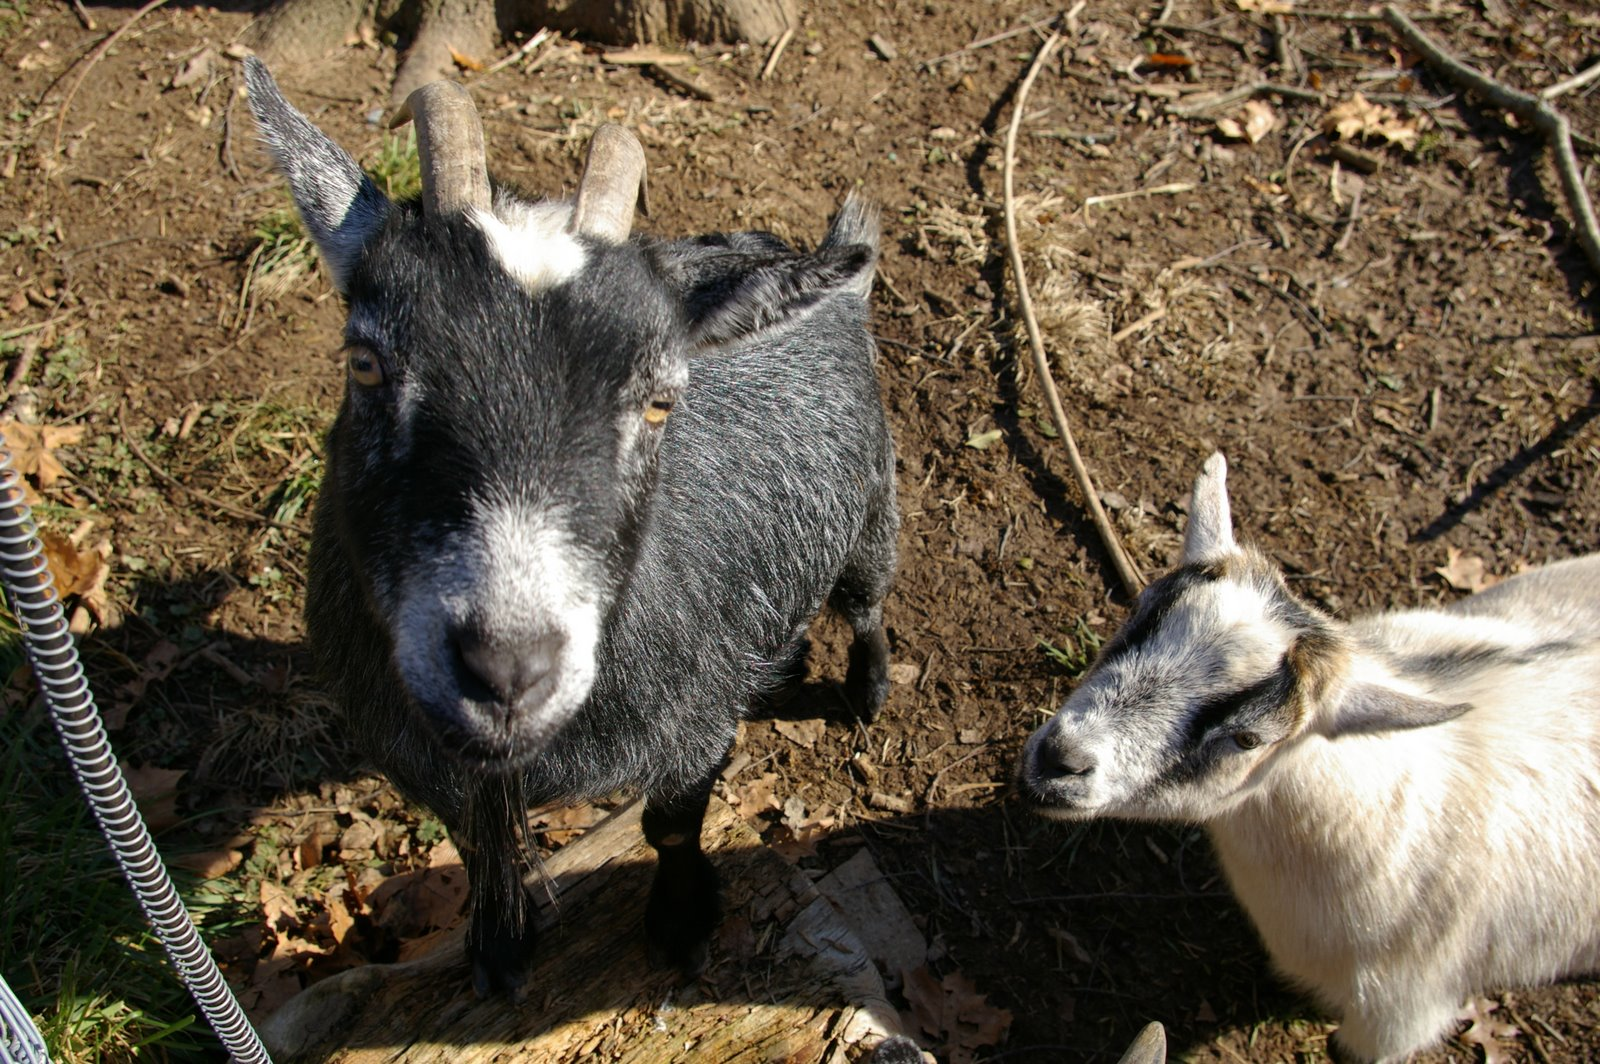 funny looking goat - photo #21